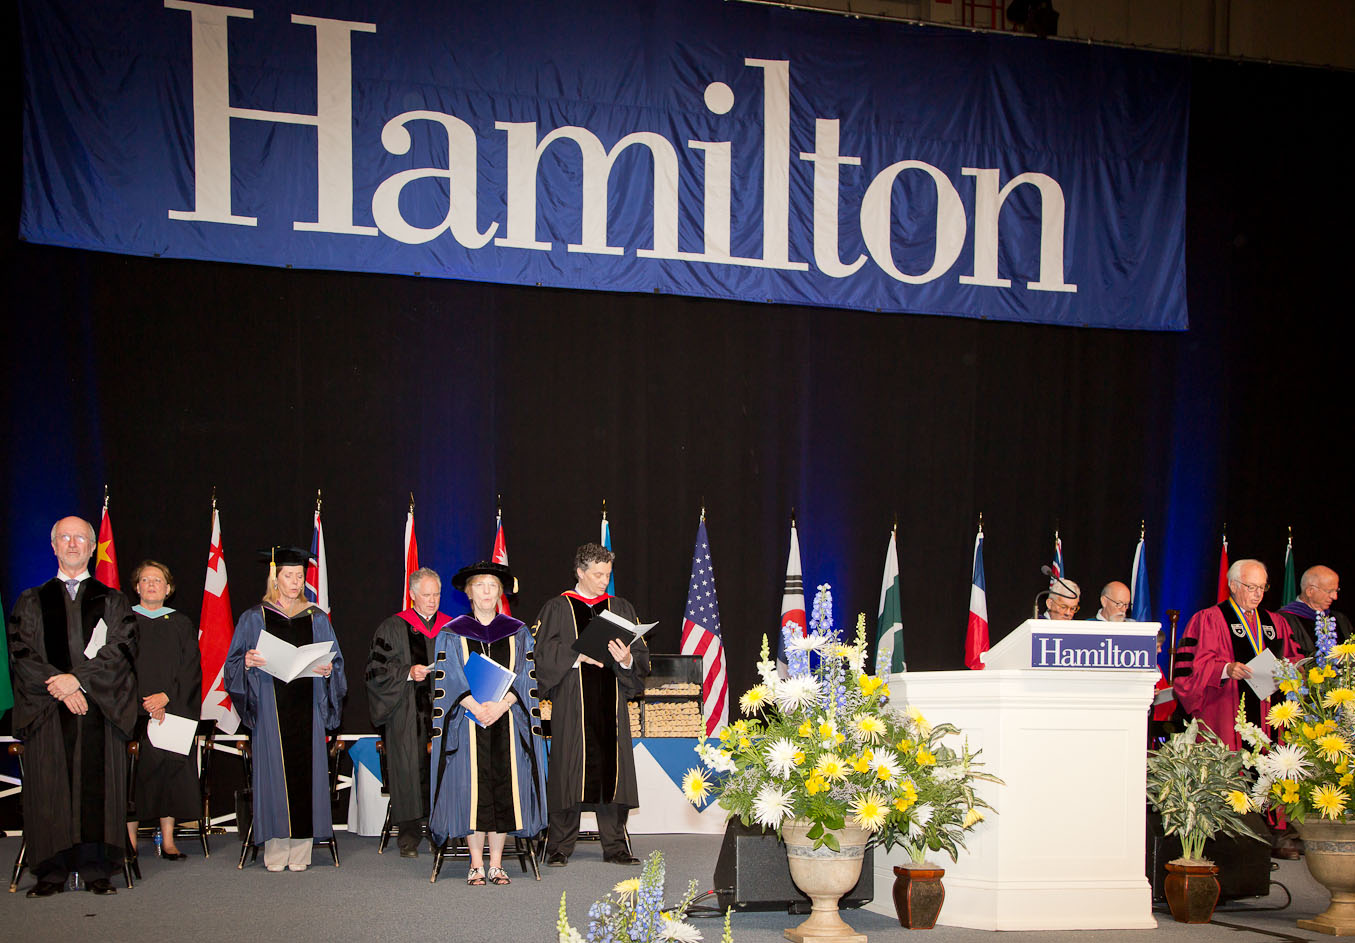 Hamilton's 2014 Commencement ceremony begins.